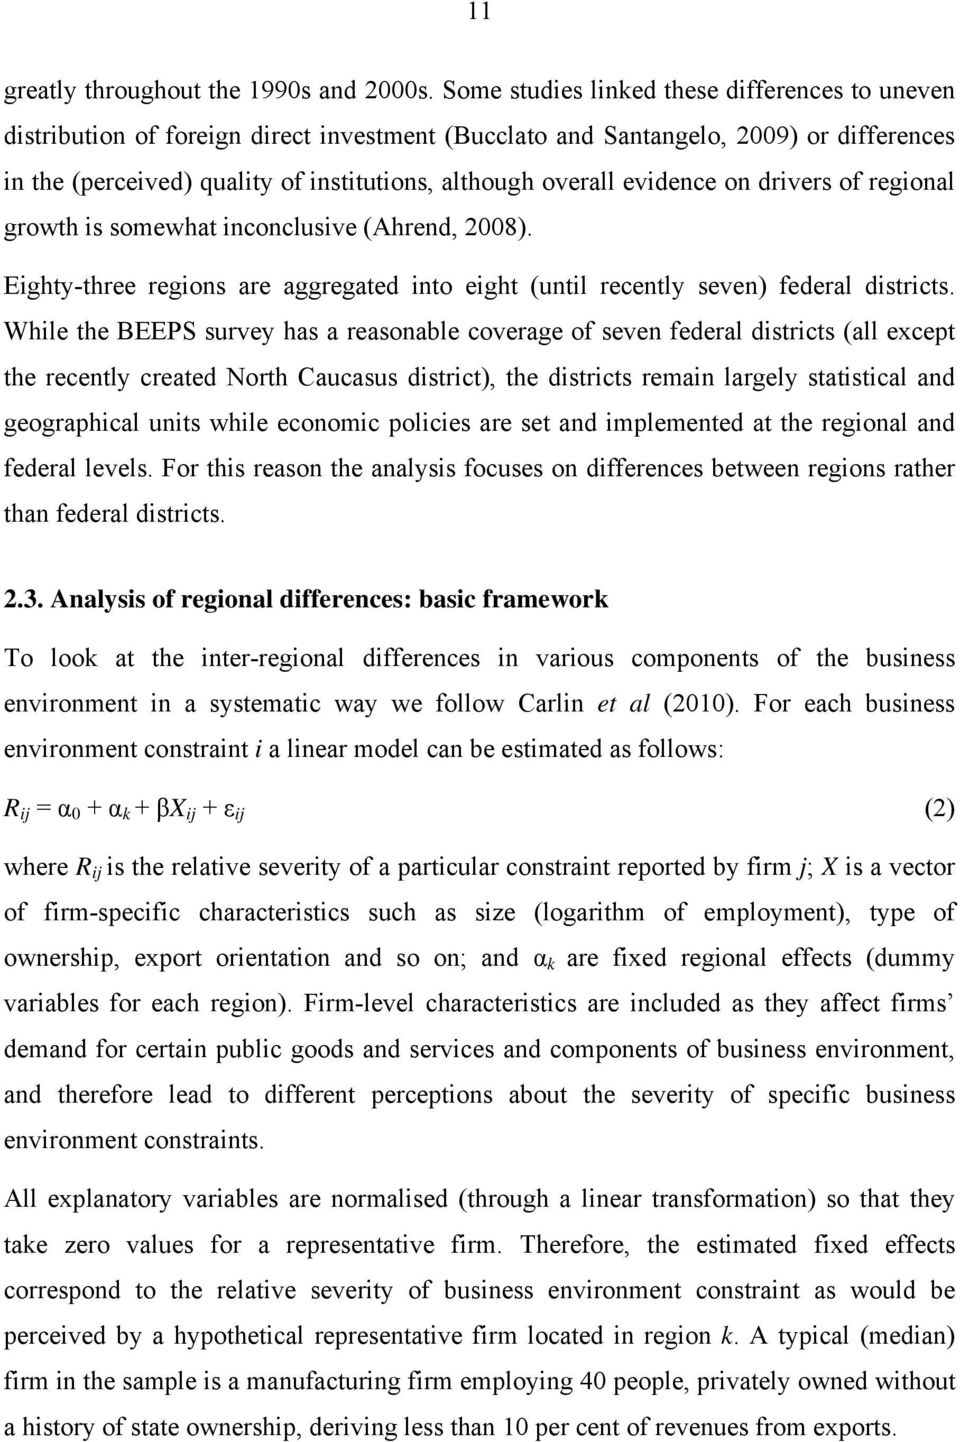 evidence on drivers of regional growth is somewhat inconclusive (Ahrend, 2008). Eighty-three regions are aggregated into eight (until recently seven) federal districts.